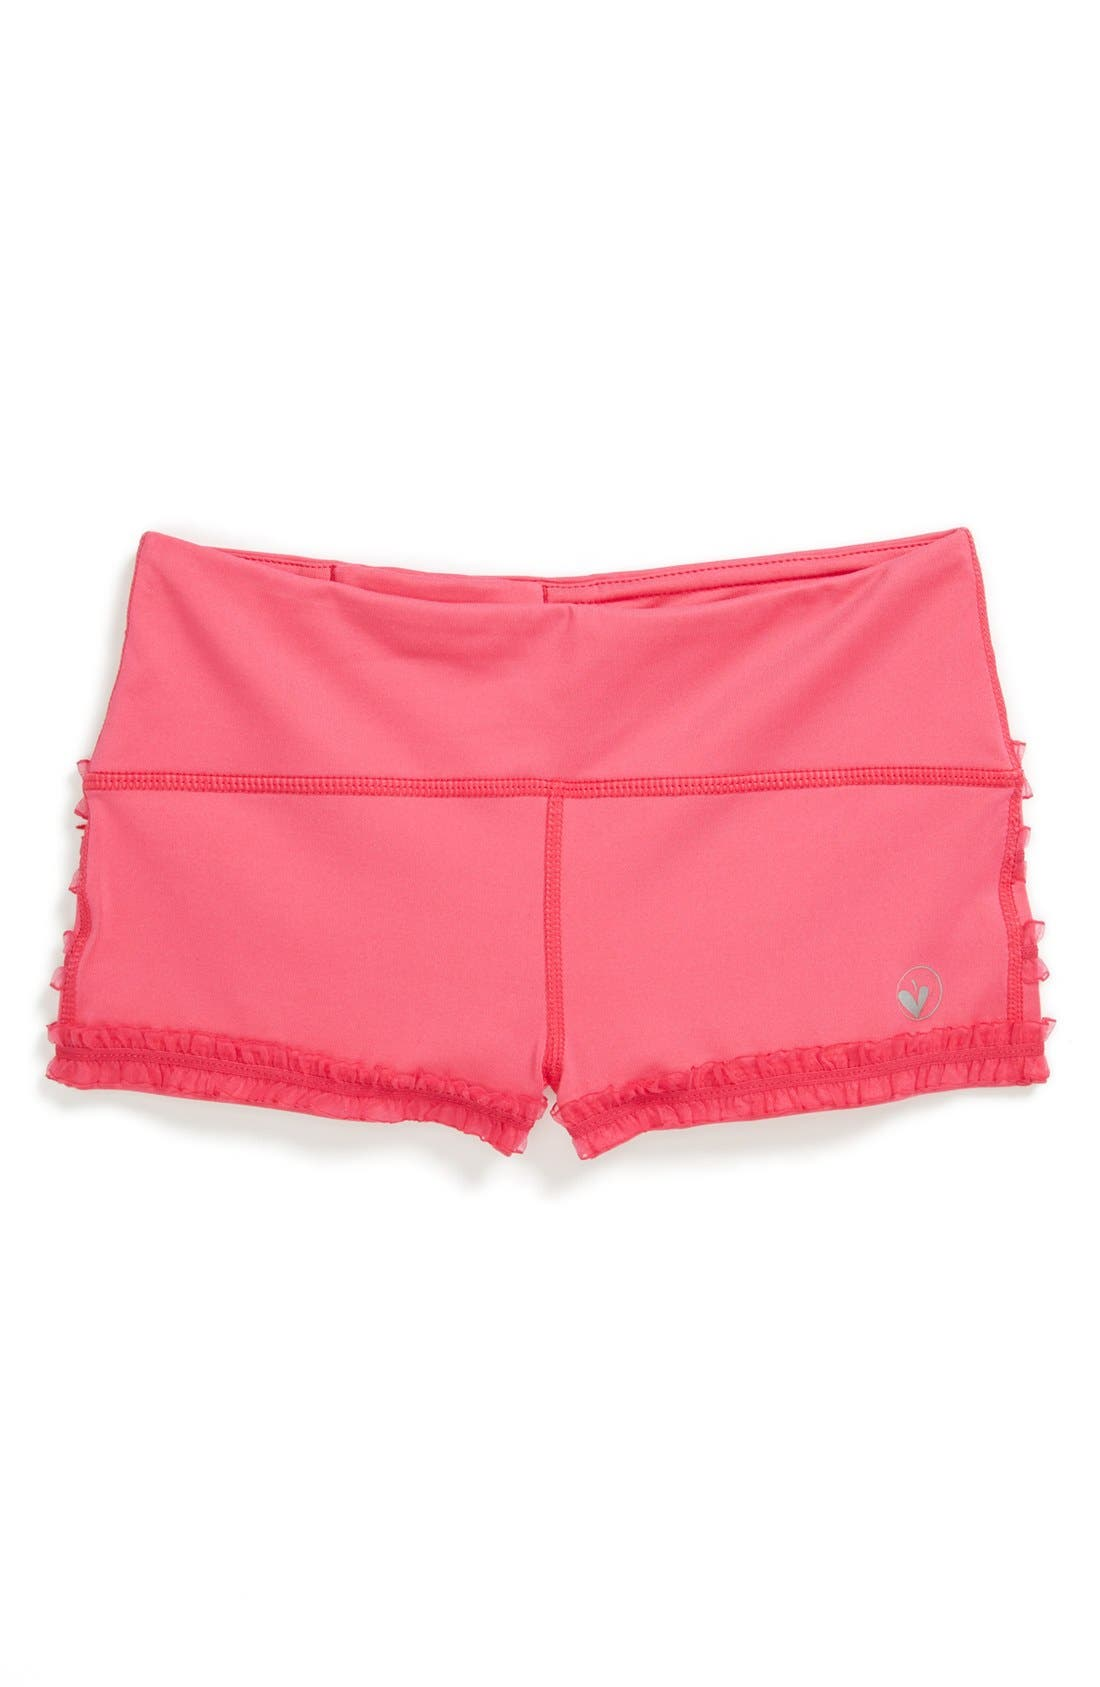 Main Image - Limeapple 'Dance' Ruffled Mini Shorts (Big Girls)